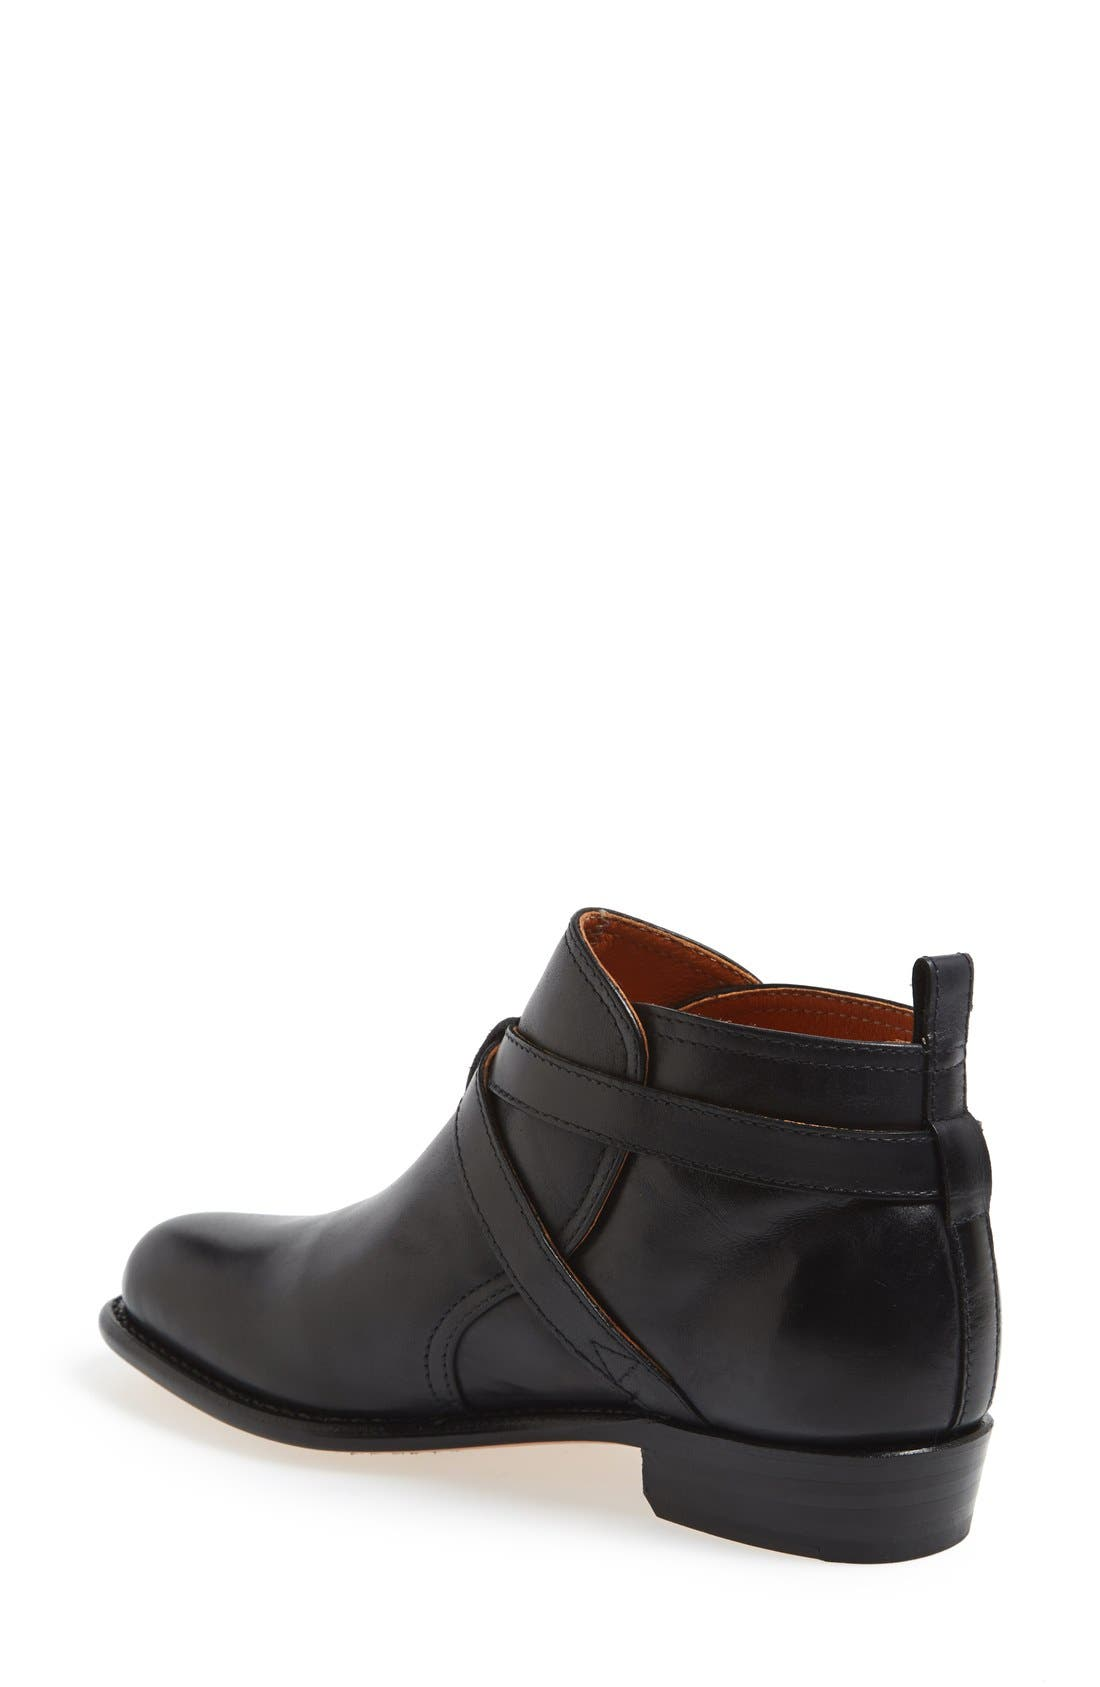 Alternate Image 2  - Frye 'Dorado' Leather Ankle Boot (Women)